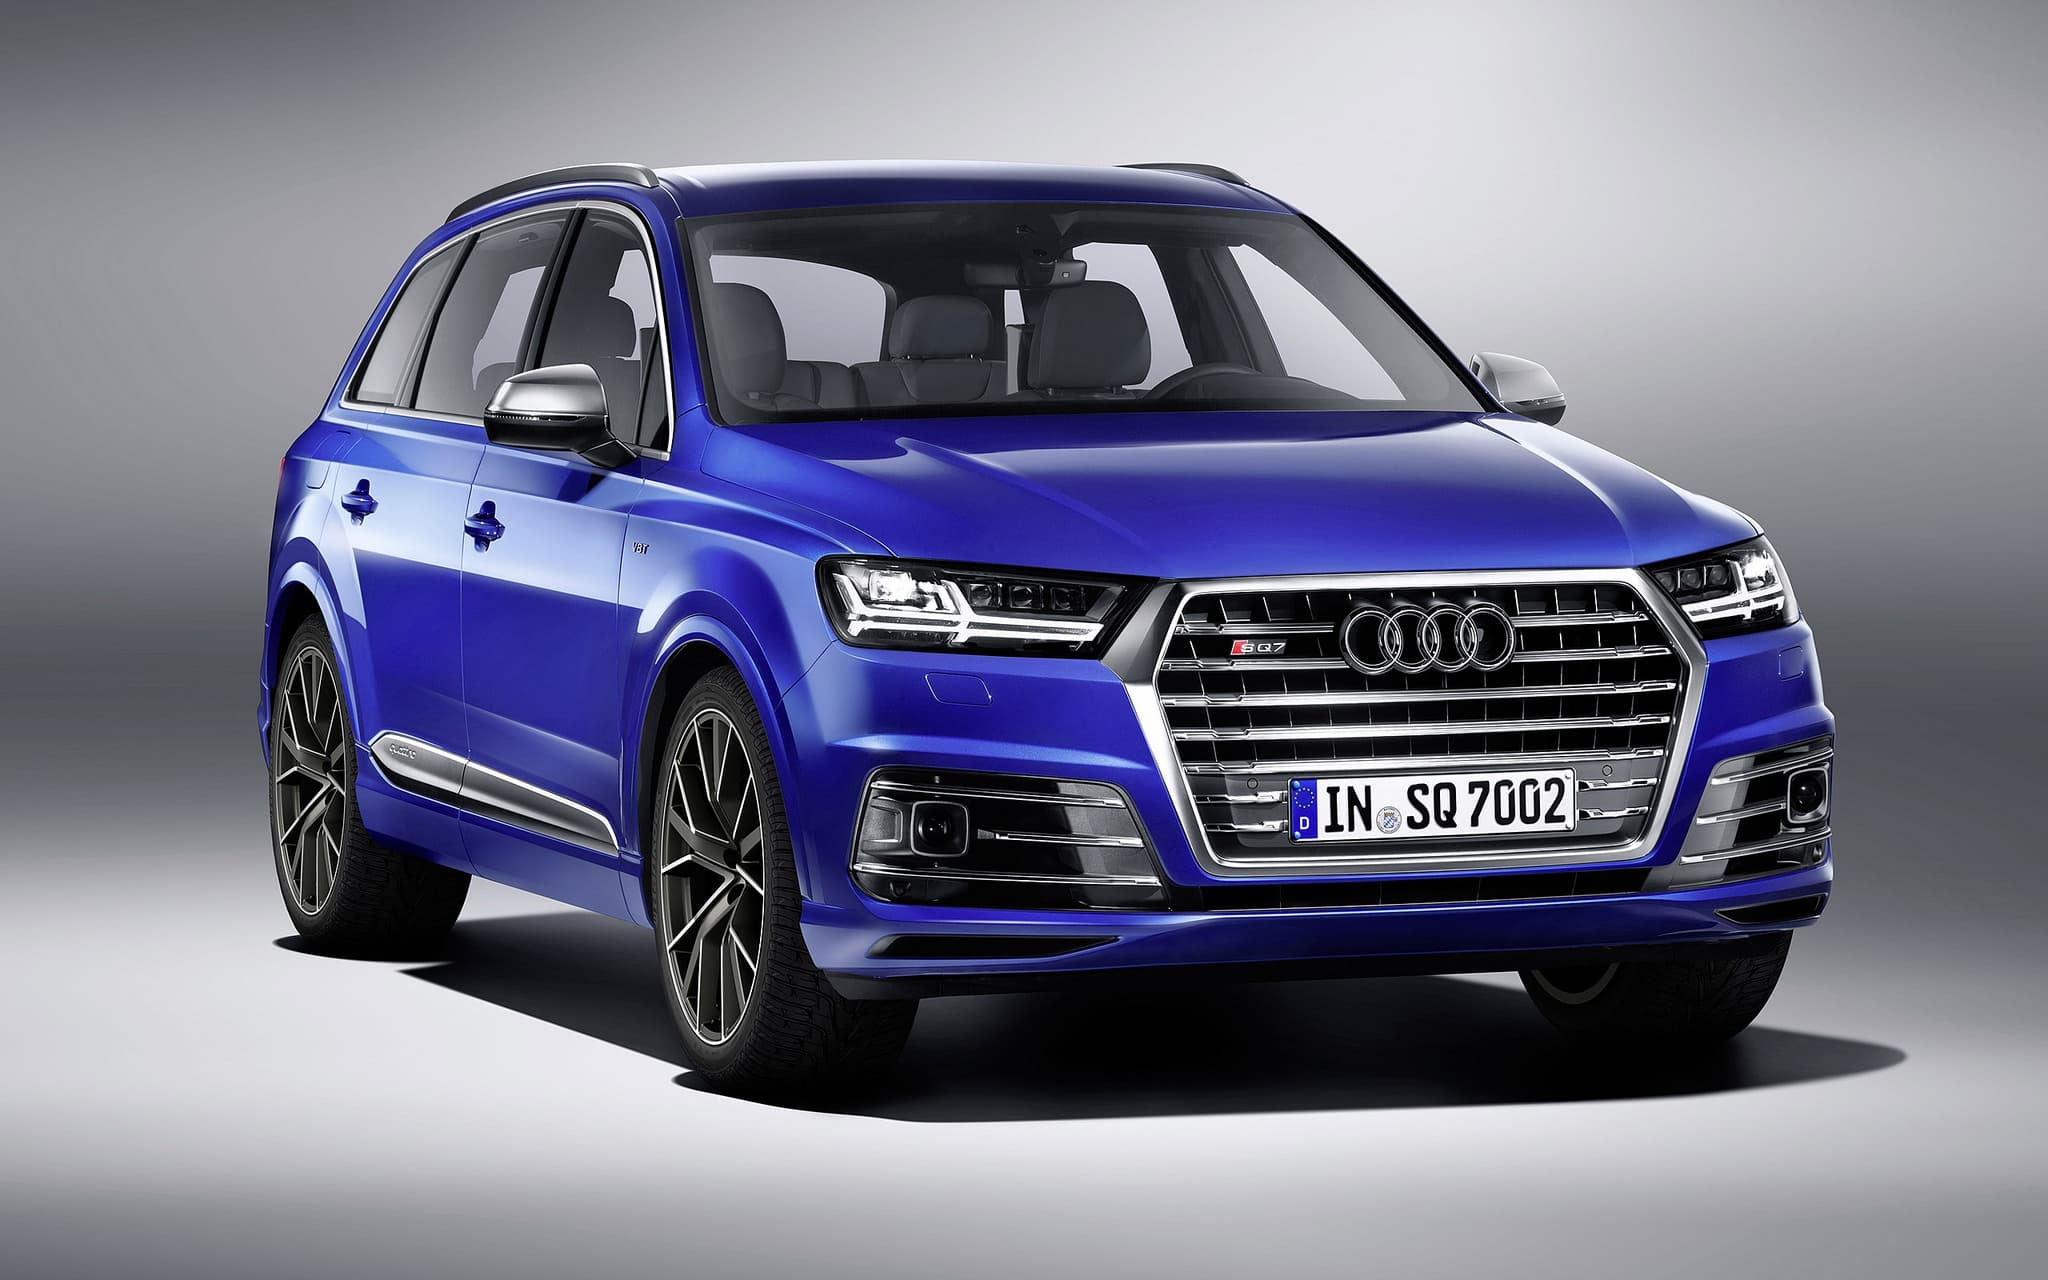 2016 Audi SQ7 wallpaper